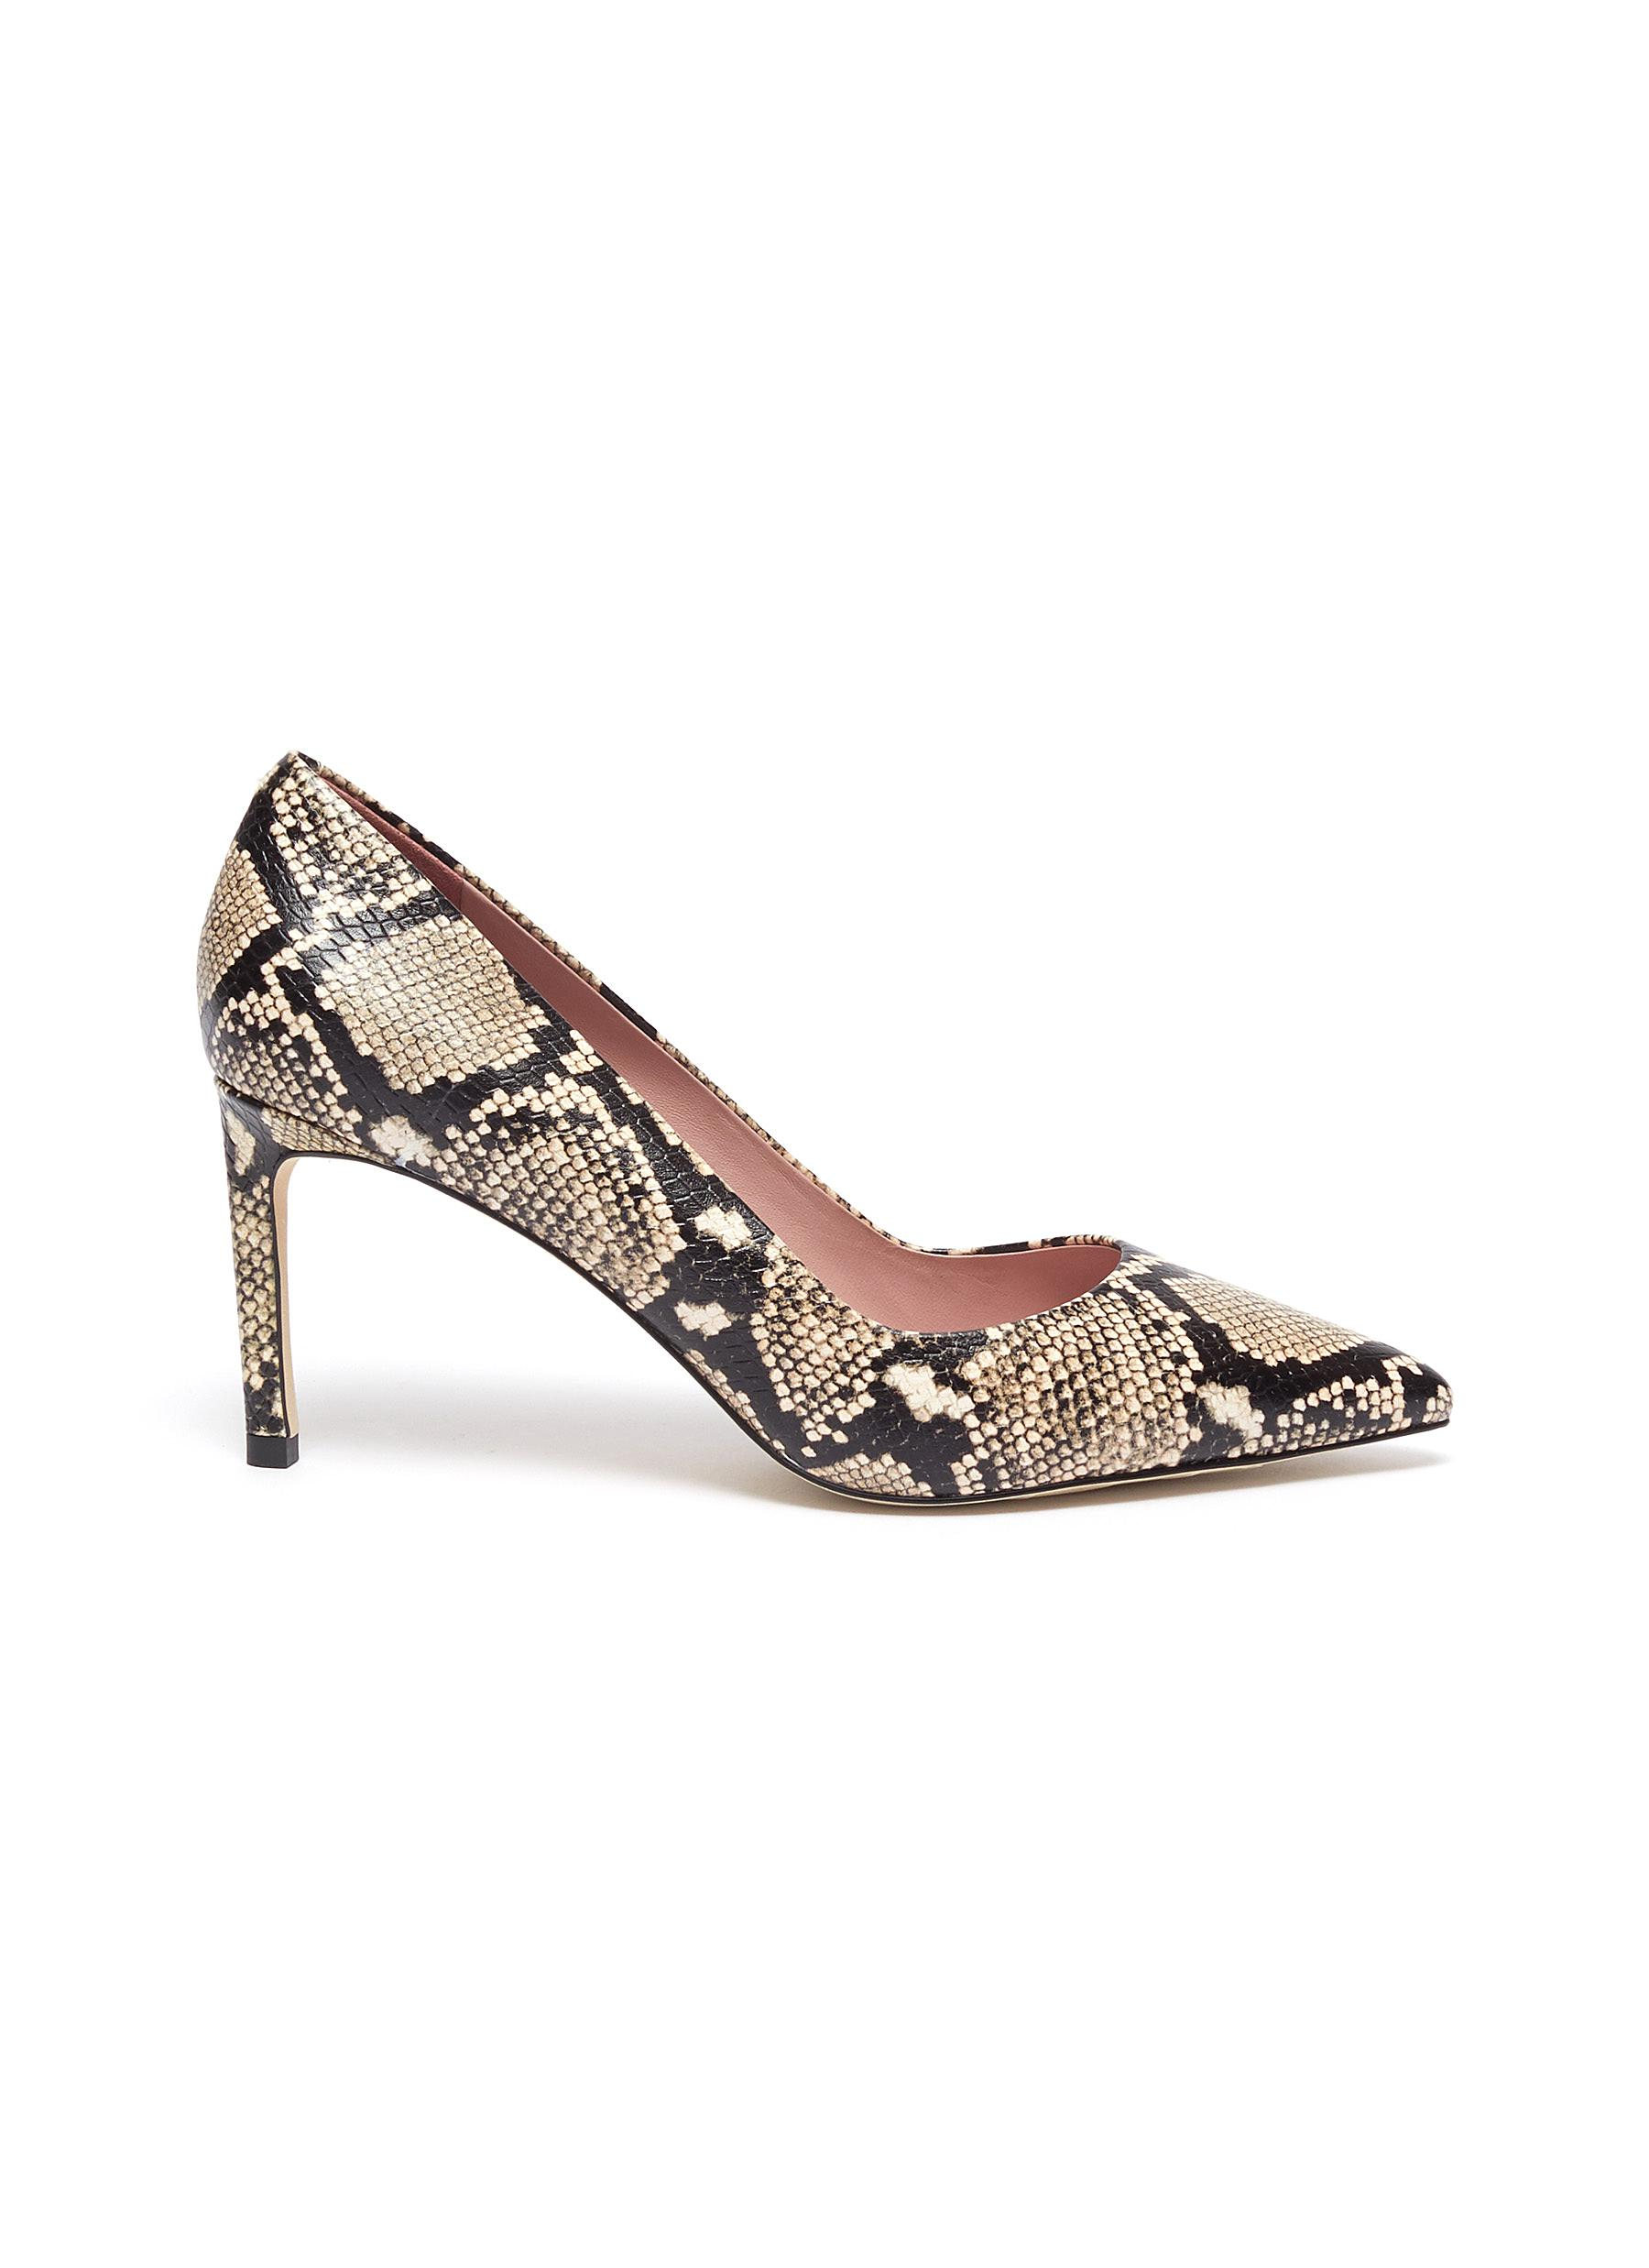 Rosie snake embossed leather pumps by Pedder Red